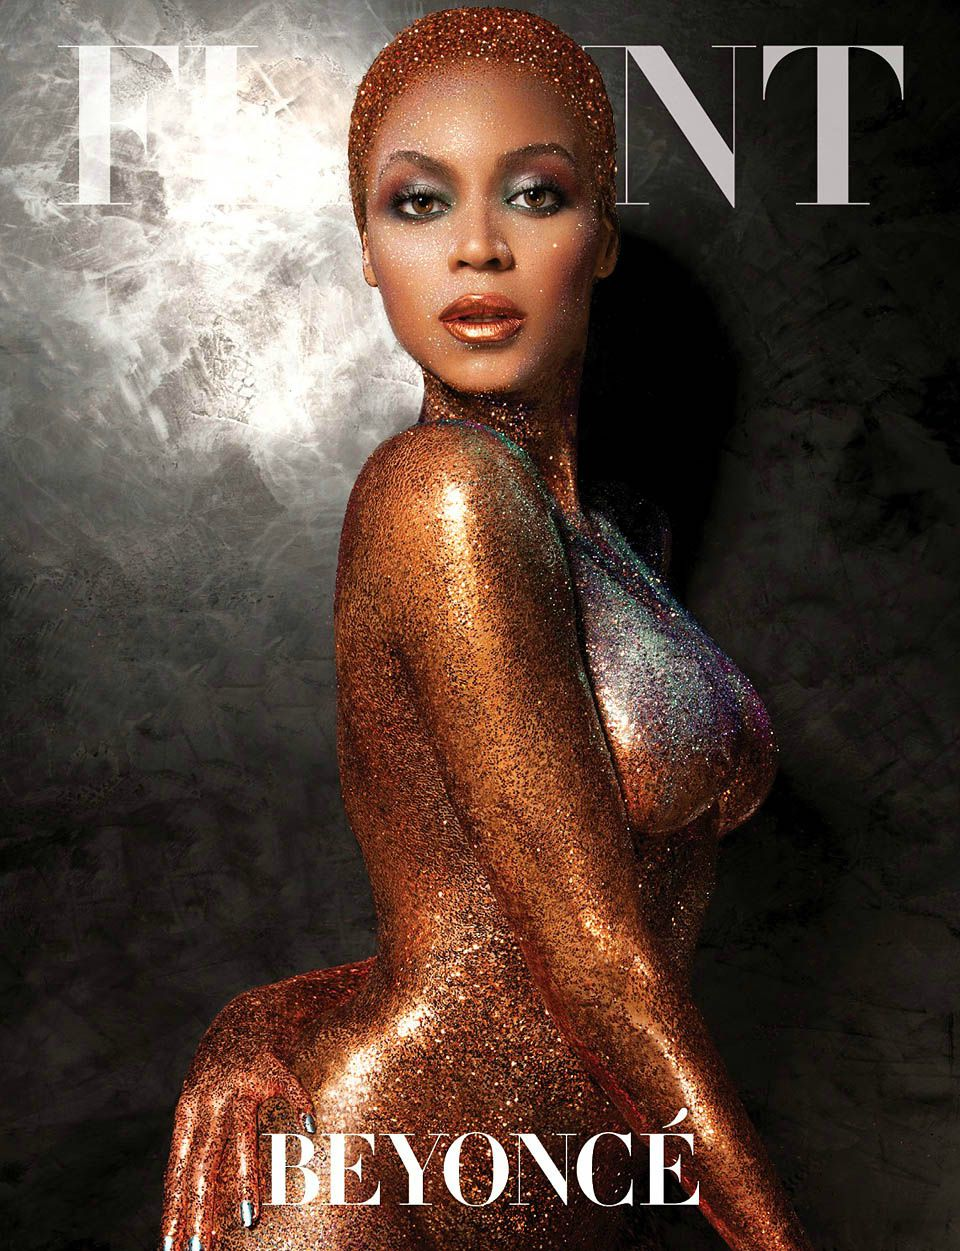 beyonce-knowles-tony-duran-x-Flaunt-magazine-.jpg